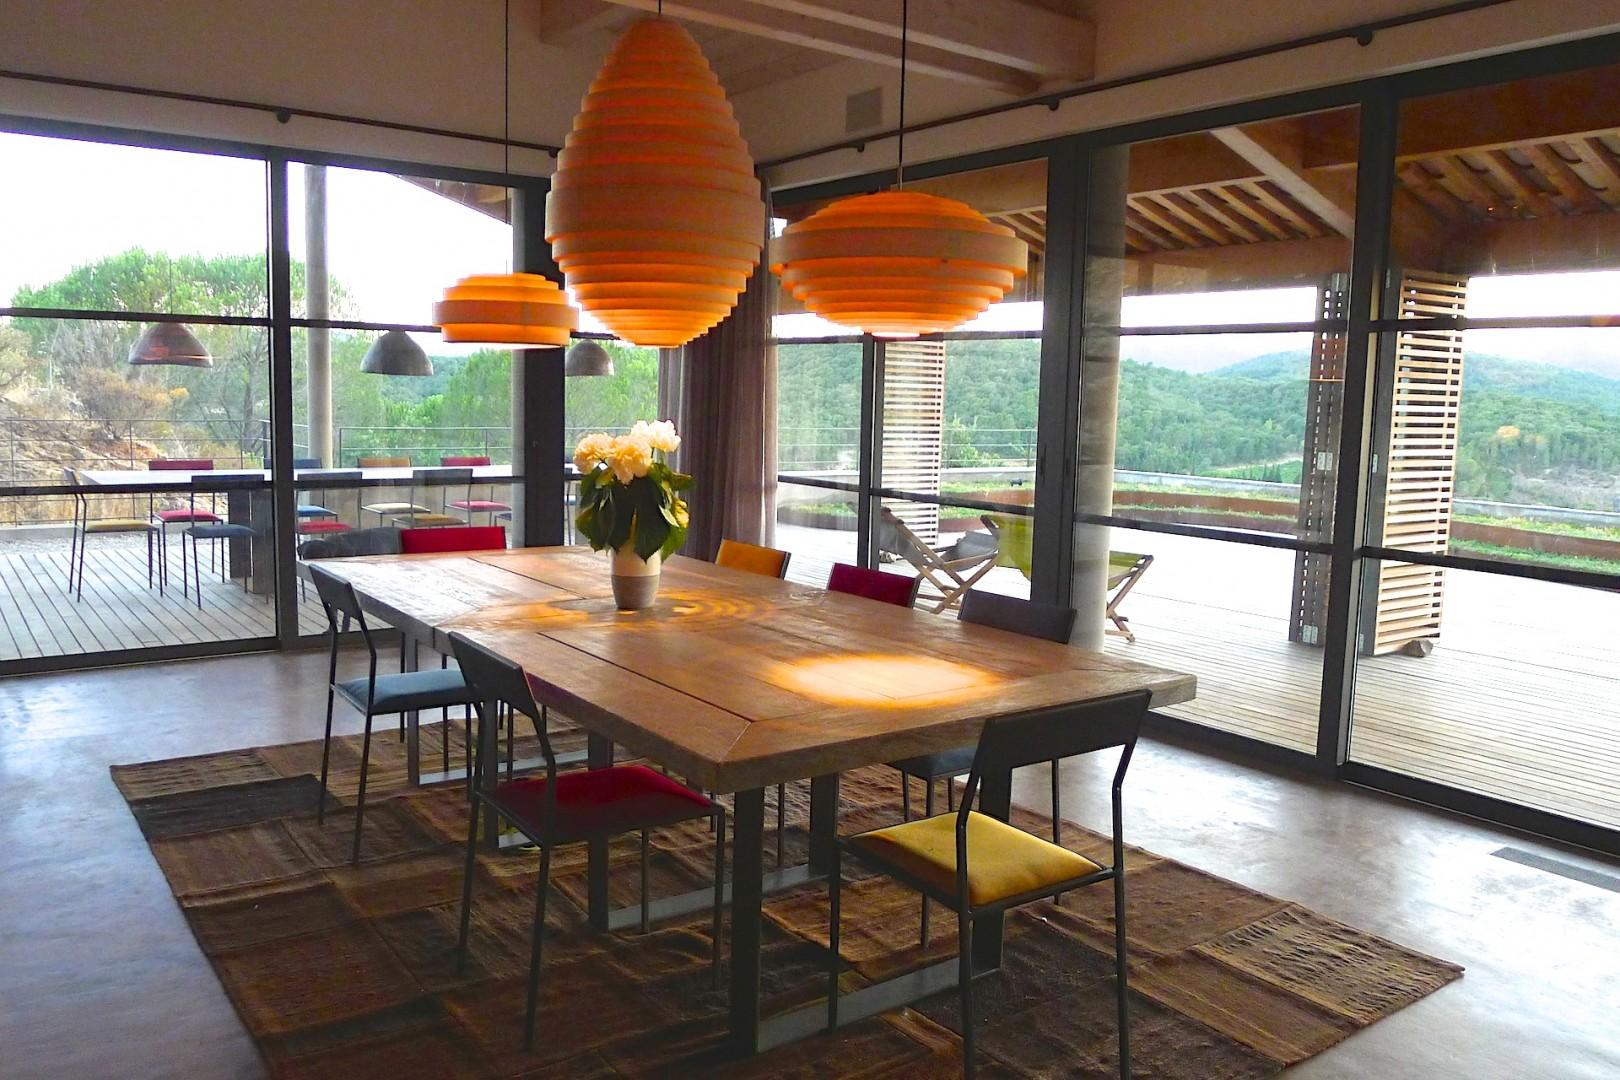 The indoor dining space is perfect for family dinners